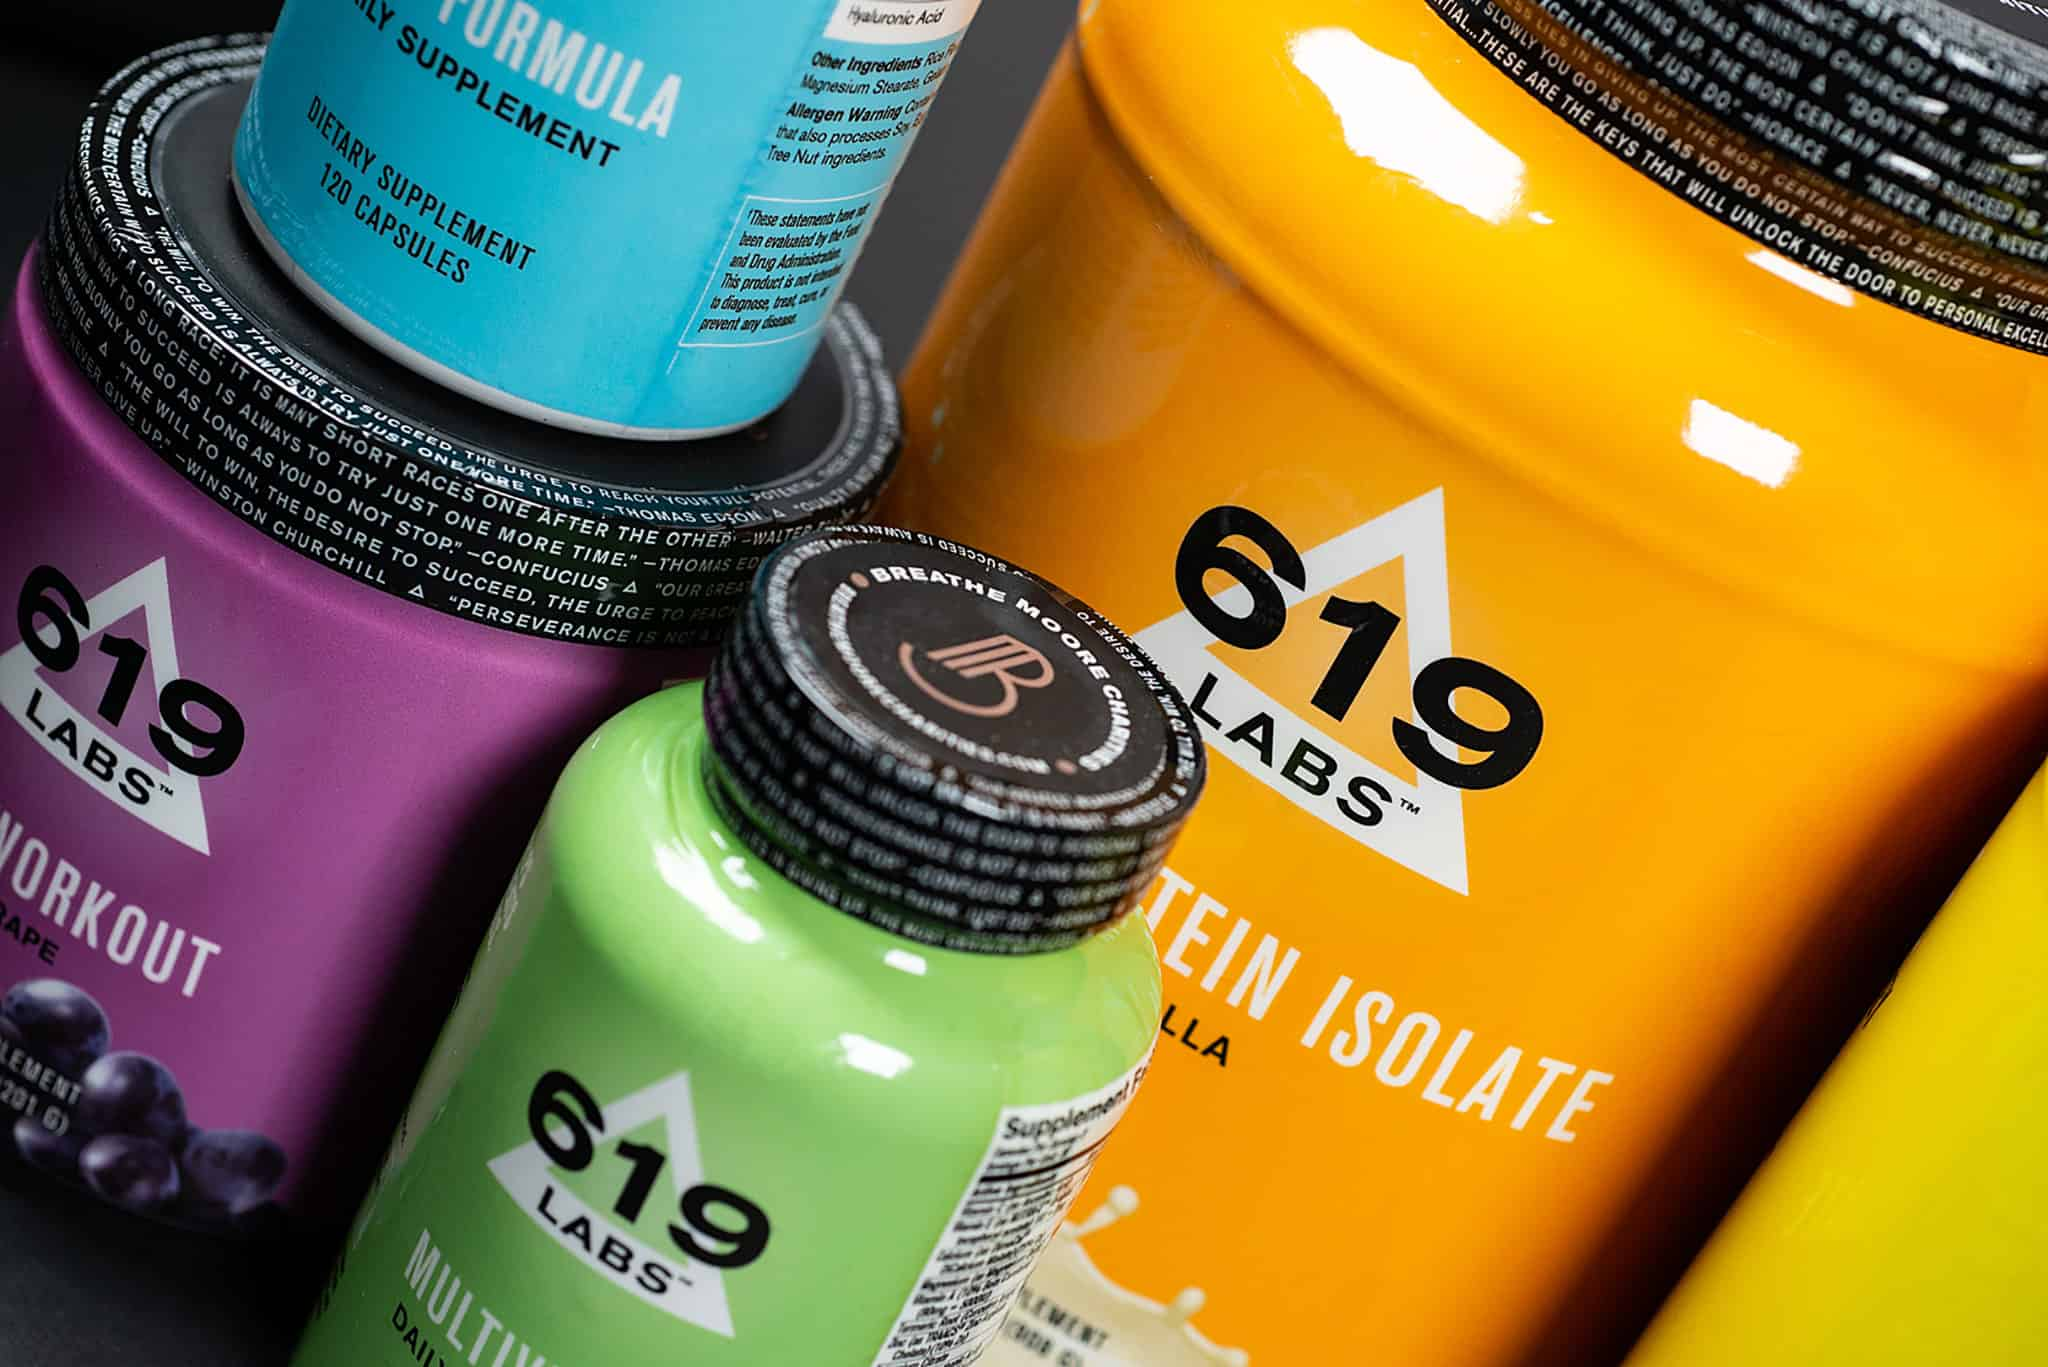 Custom packaging, graphic design, and branding for 619 Labs fitness and nutritional supplements, full product line | Designed by Field of Study: A branding and graphic design consultancy | Houston TX | Jennifer Blanco & John Earles